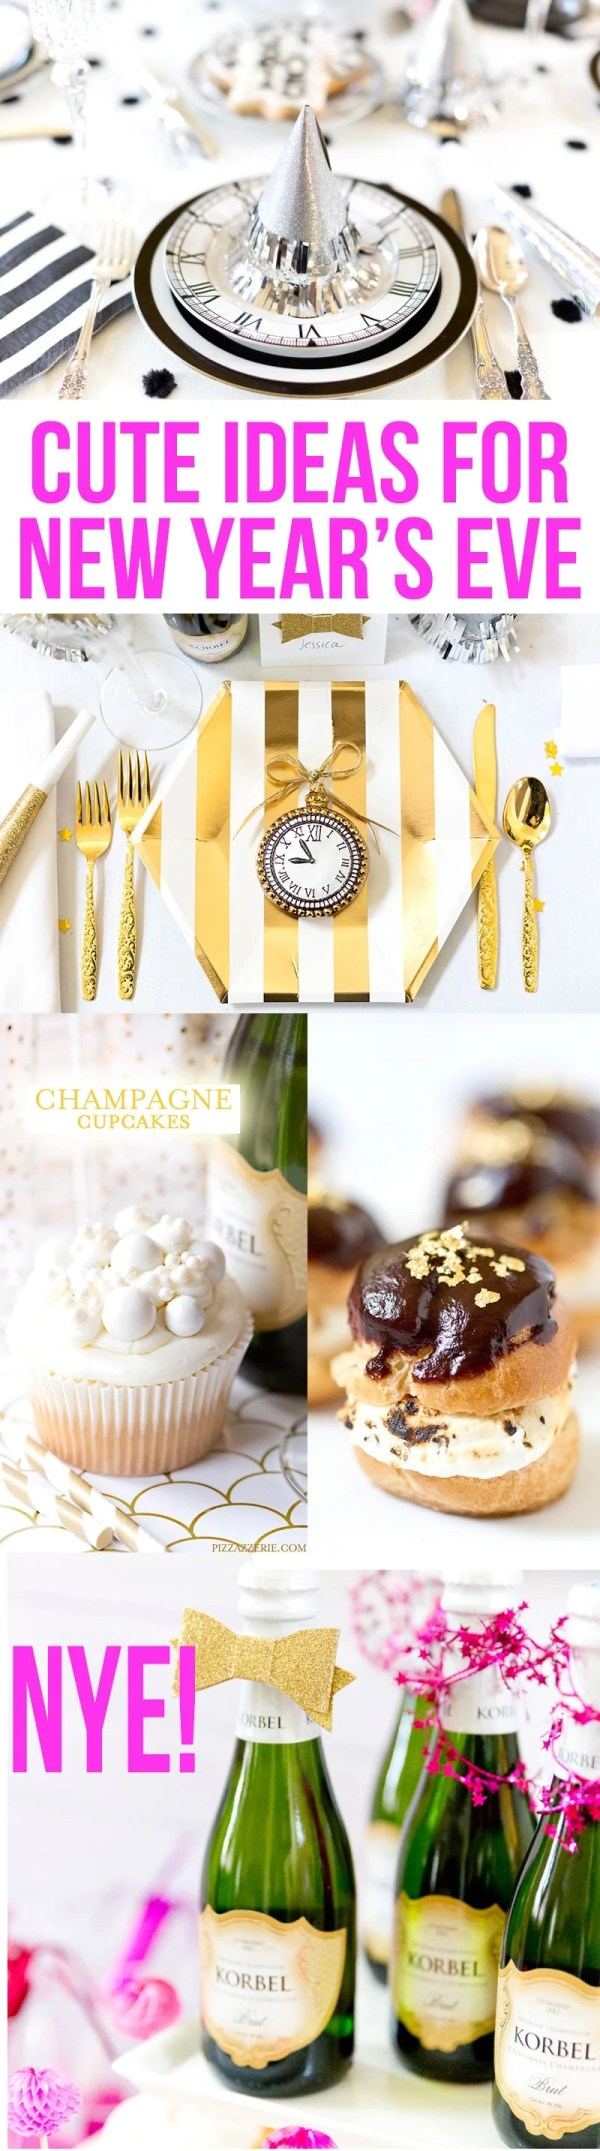 Favorite New Year's Eve Party Ideas!